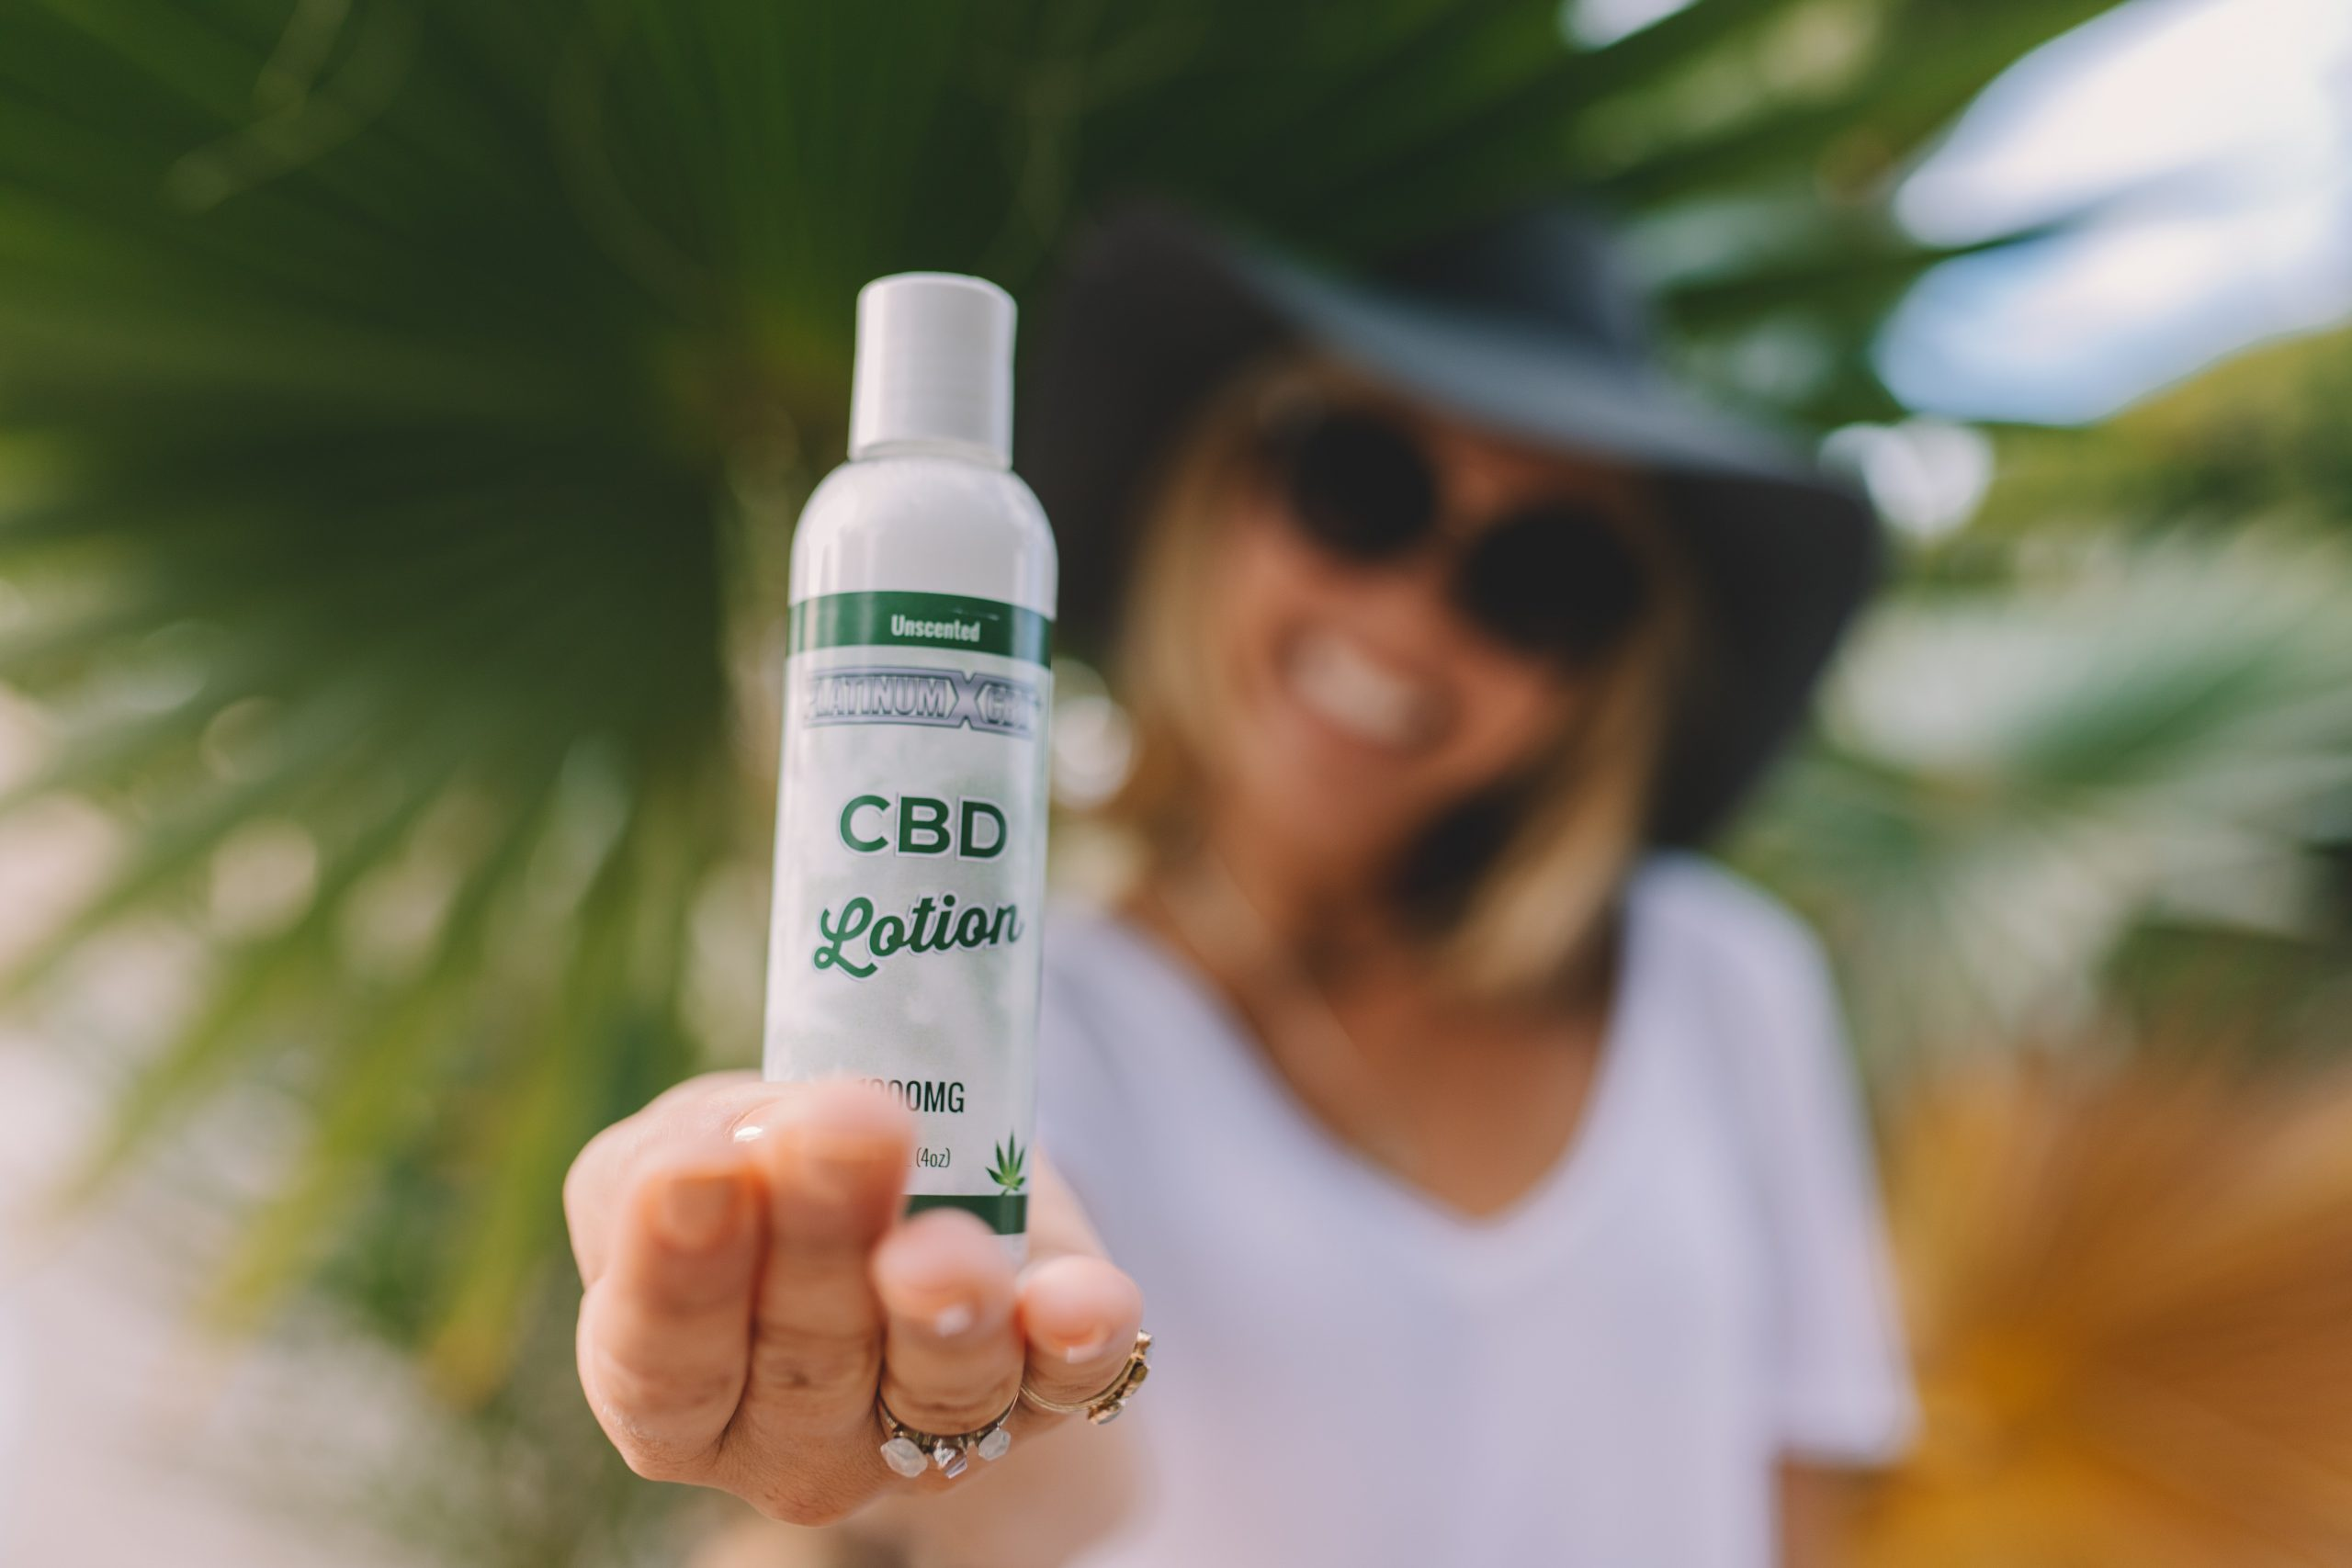 Can You Use CBD Products For Recreational Purposes